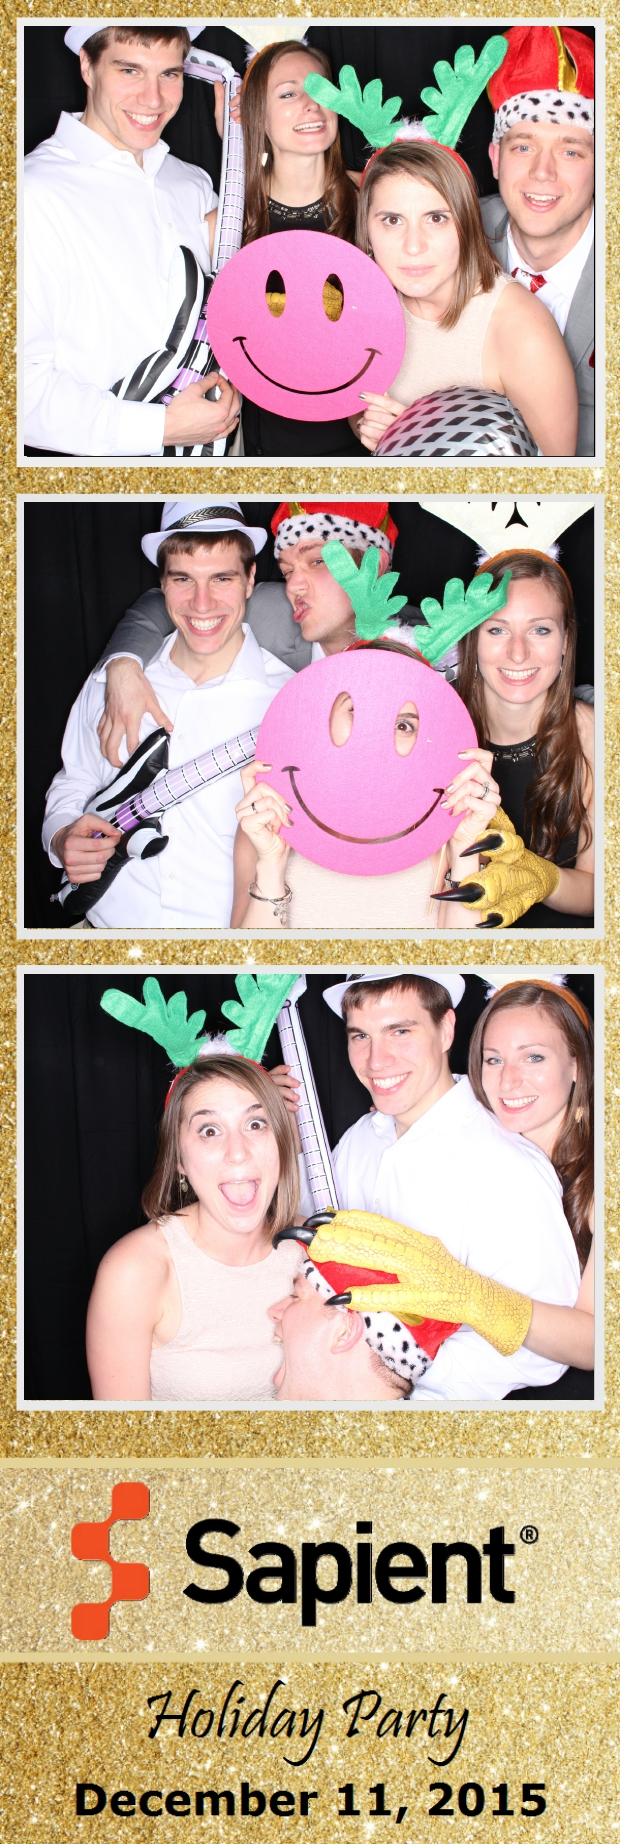 Guest House Events Photo Booth Sapient Holiday Party (82).jpg